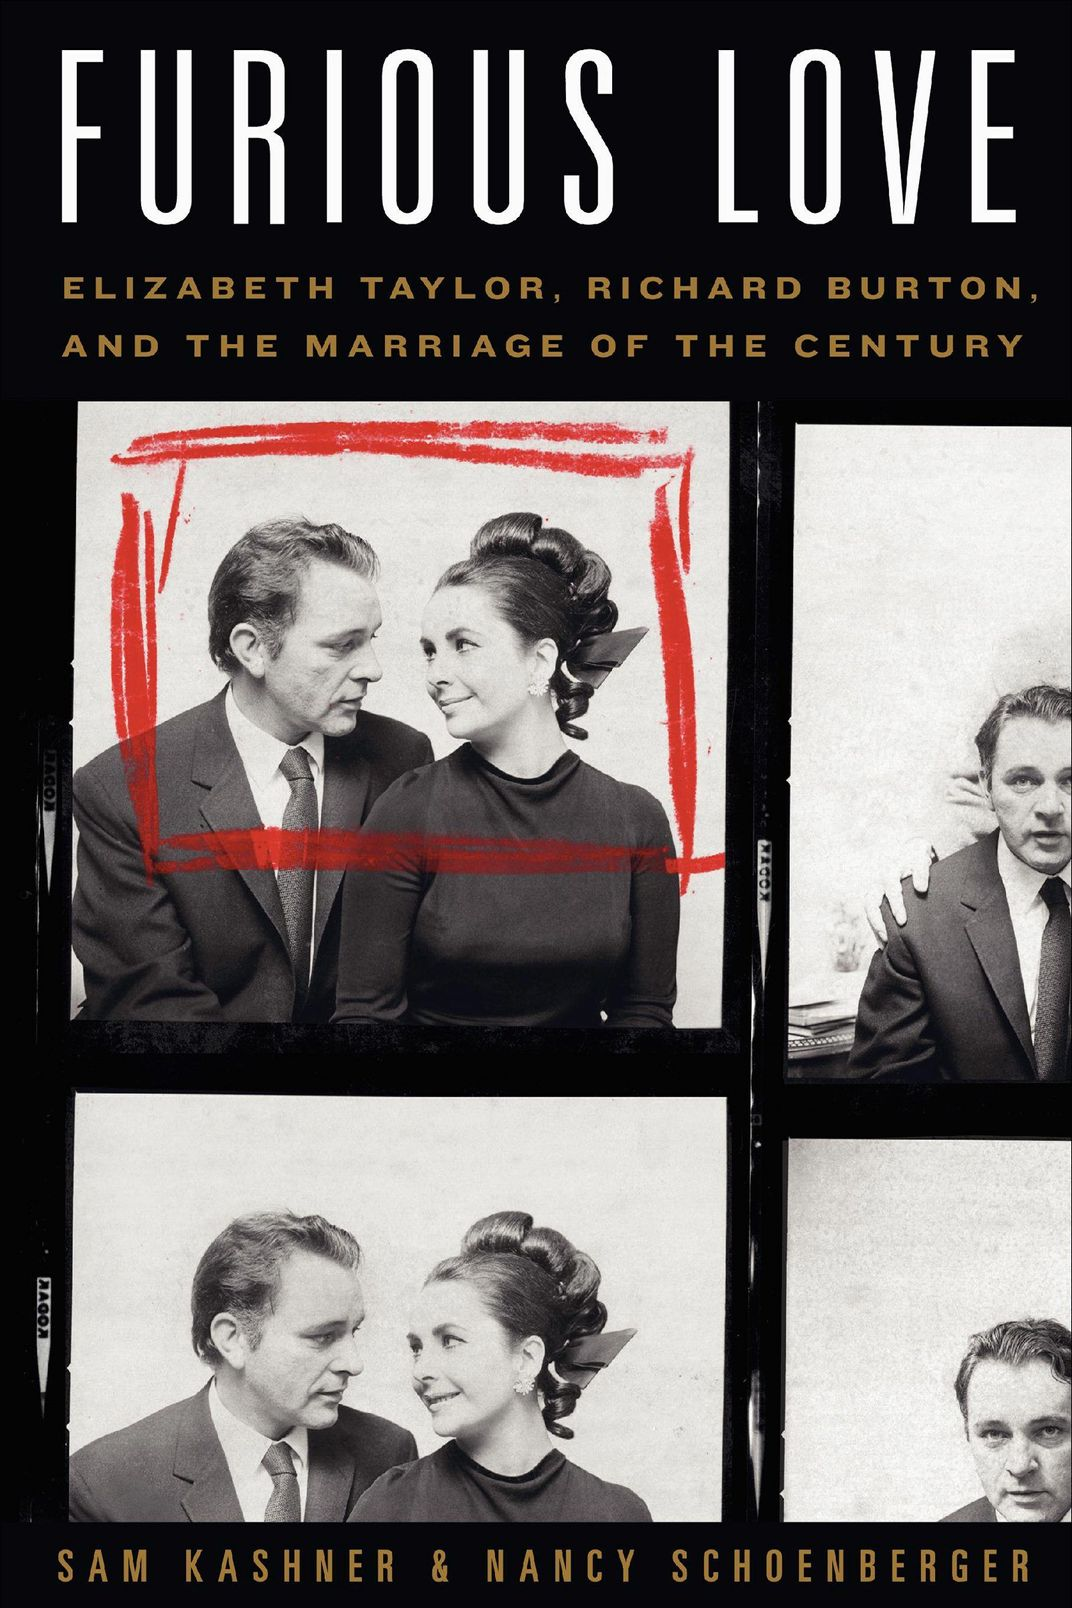 Furious Love: Elizabeth Taylor, Richard Burton, and the Marriage of the Century, by Sam Kashner and Nancy Schoenberger